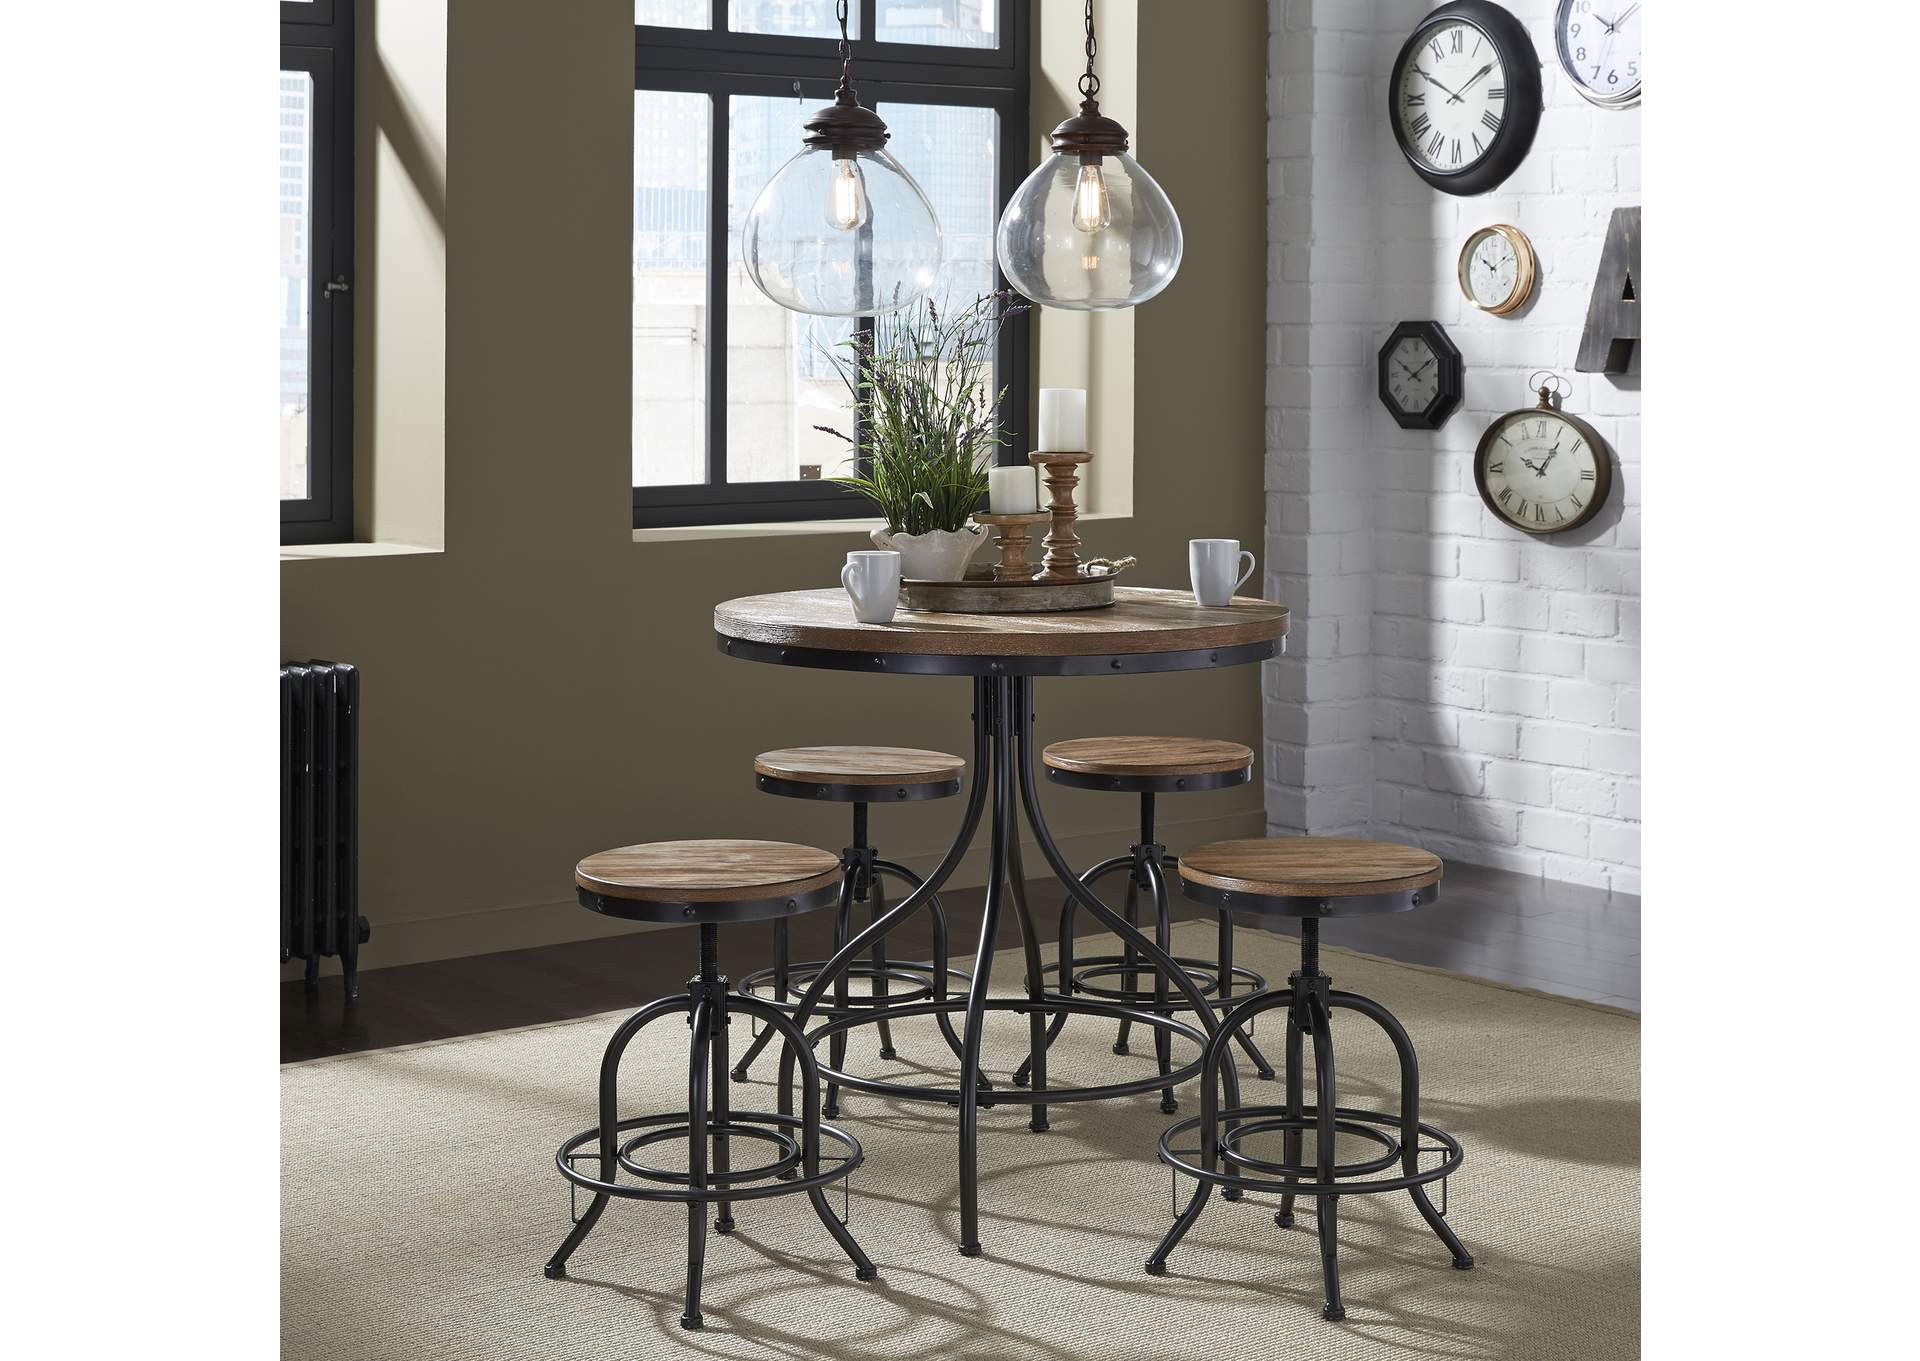 Vintage Series Distressed Metal Pub Table,Liberty